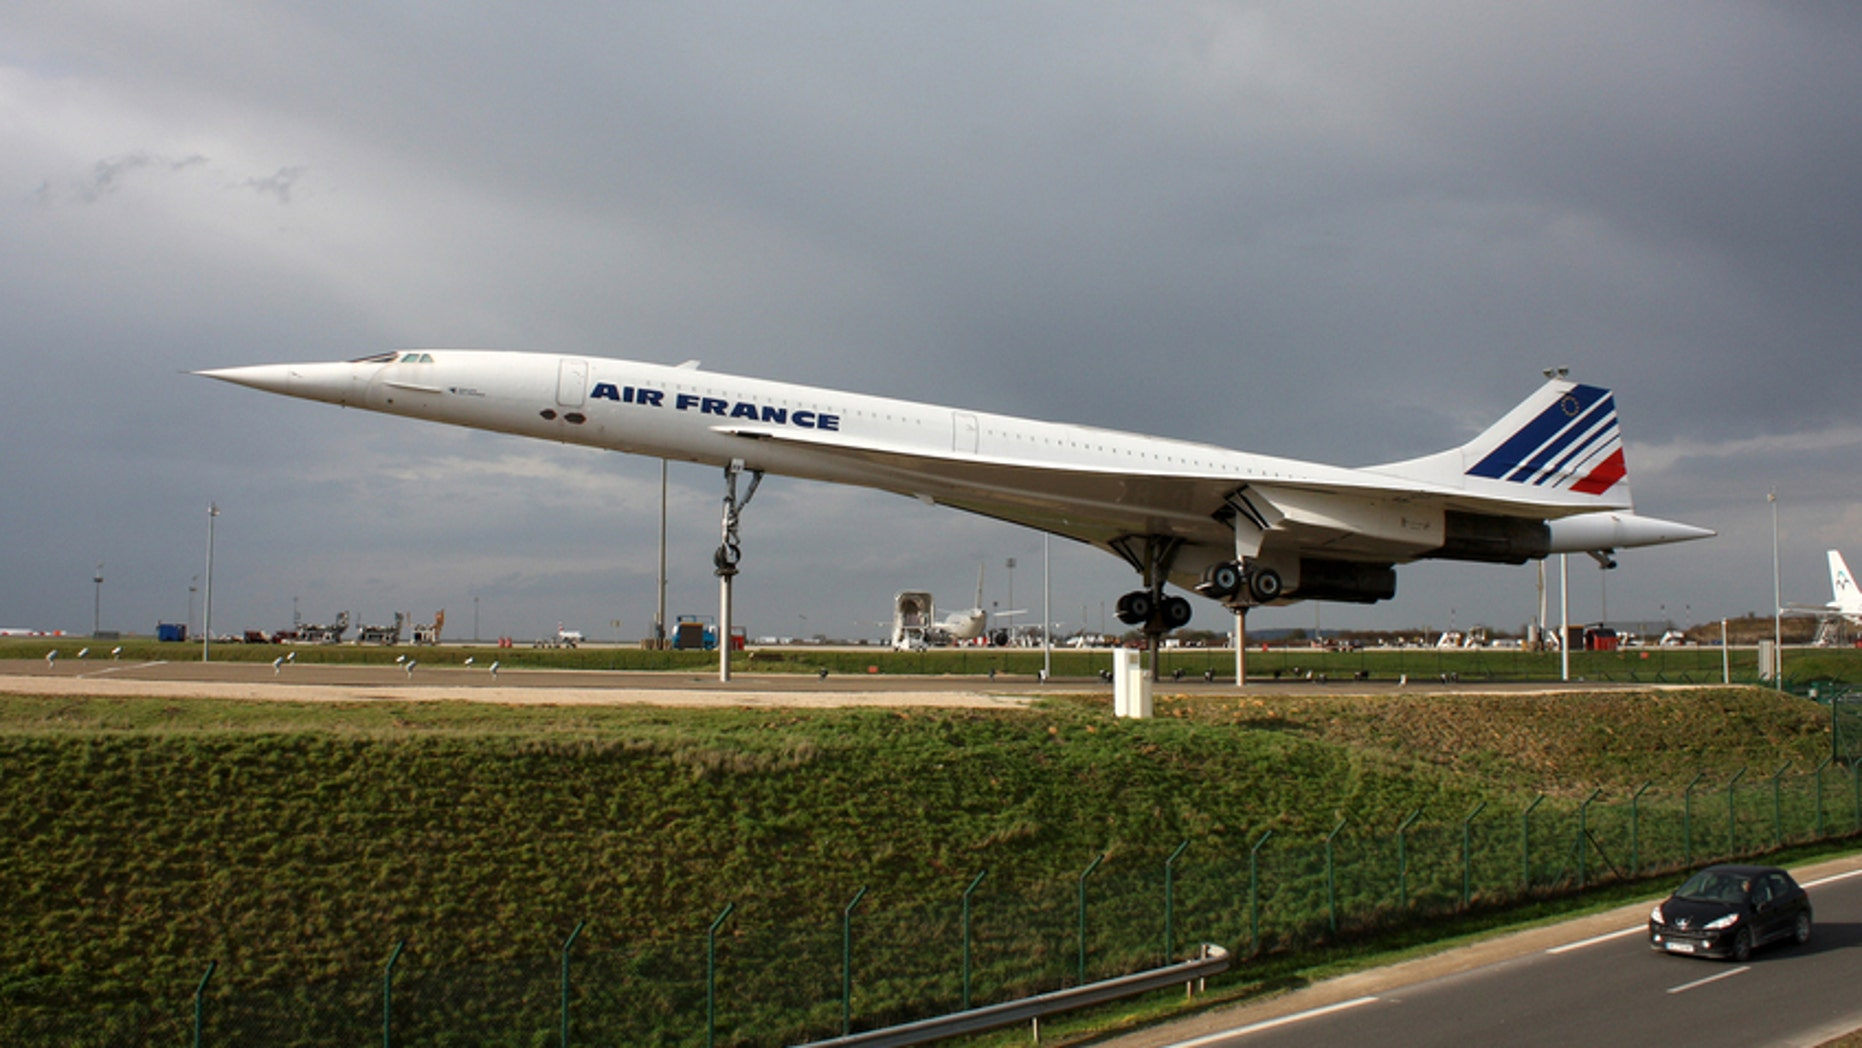 A Concorde supersonic passenger airliner with 144 seats formerly on display as a tourist attraction at Paris' Charles de Gaulle.